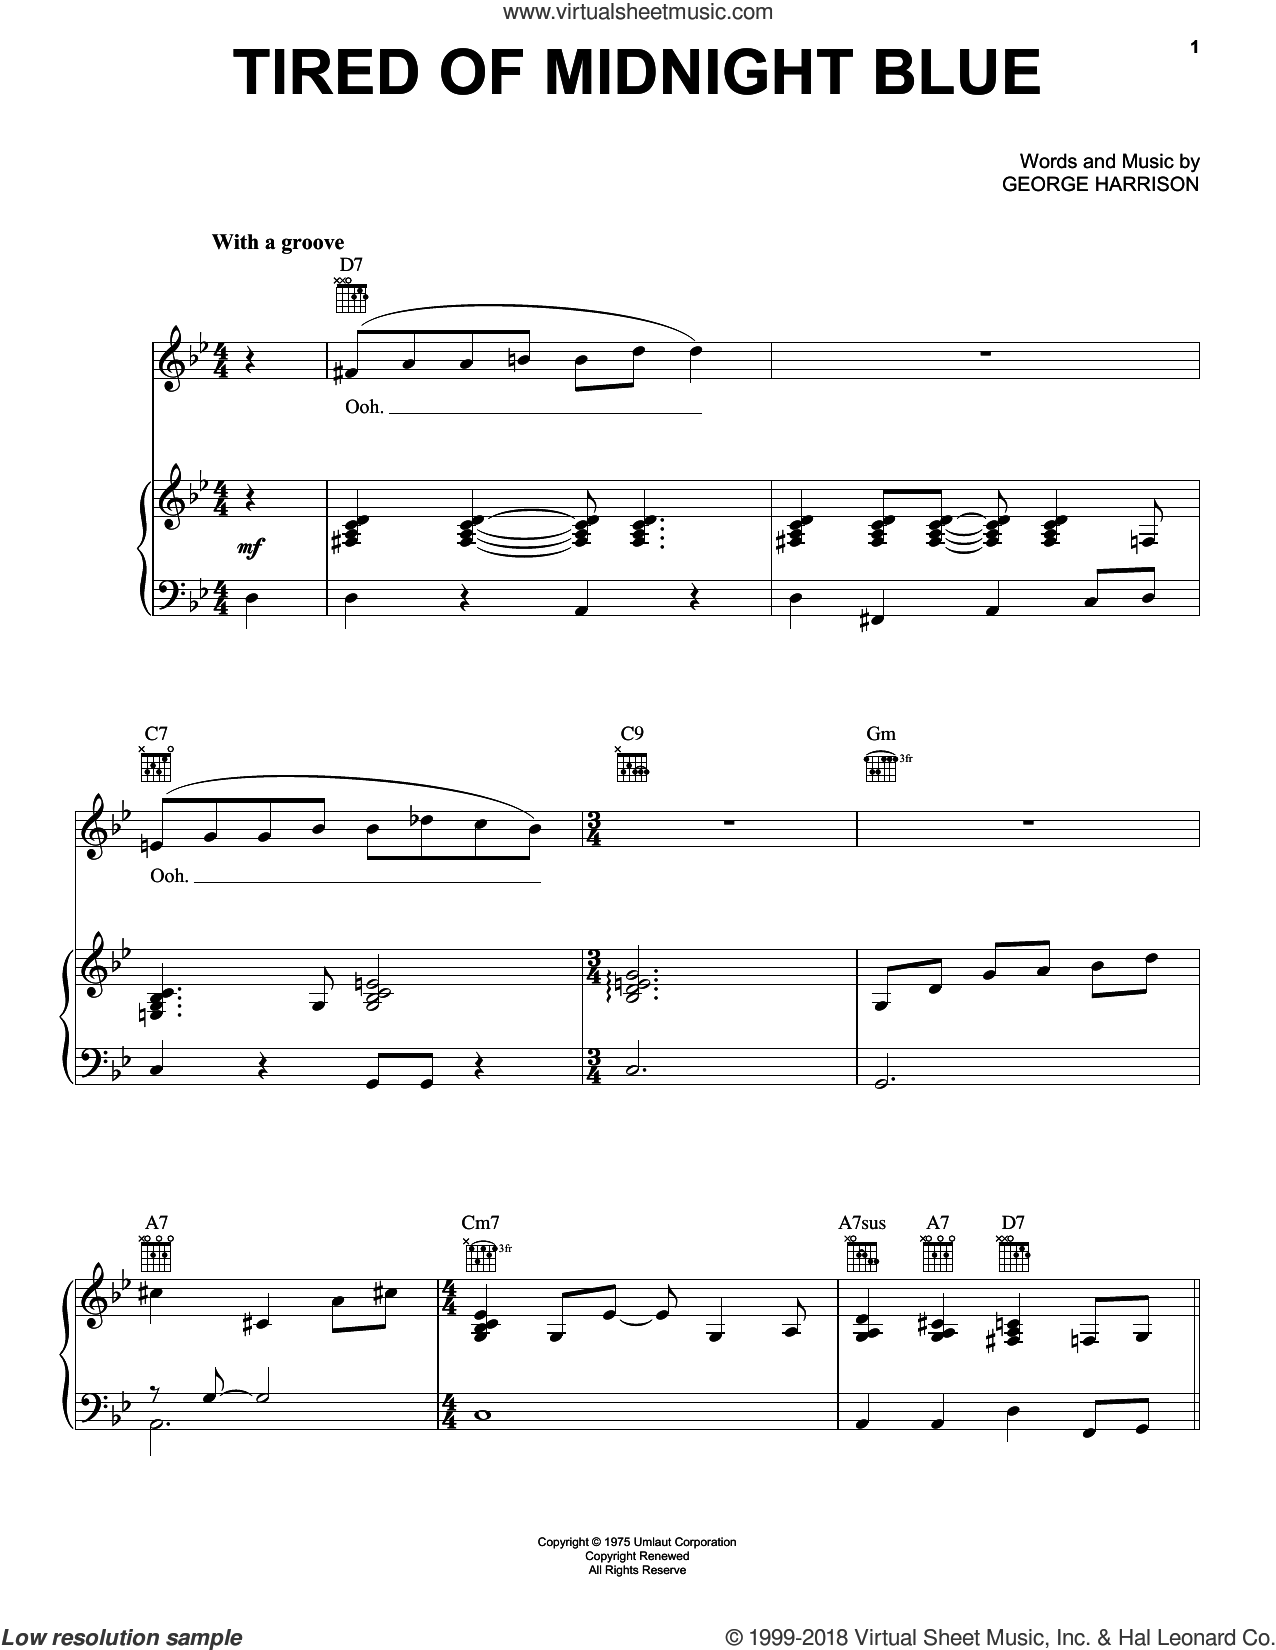 Tired Of Midnight Blue sheet music for voice, piano or guitar by George Harrison, intermediate